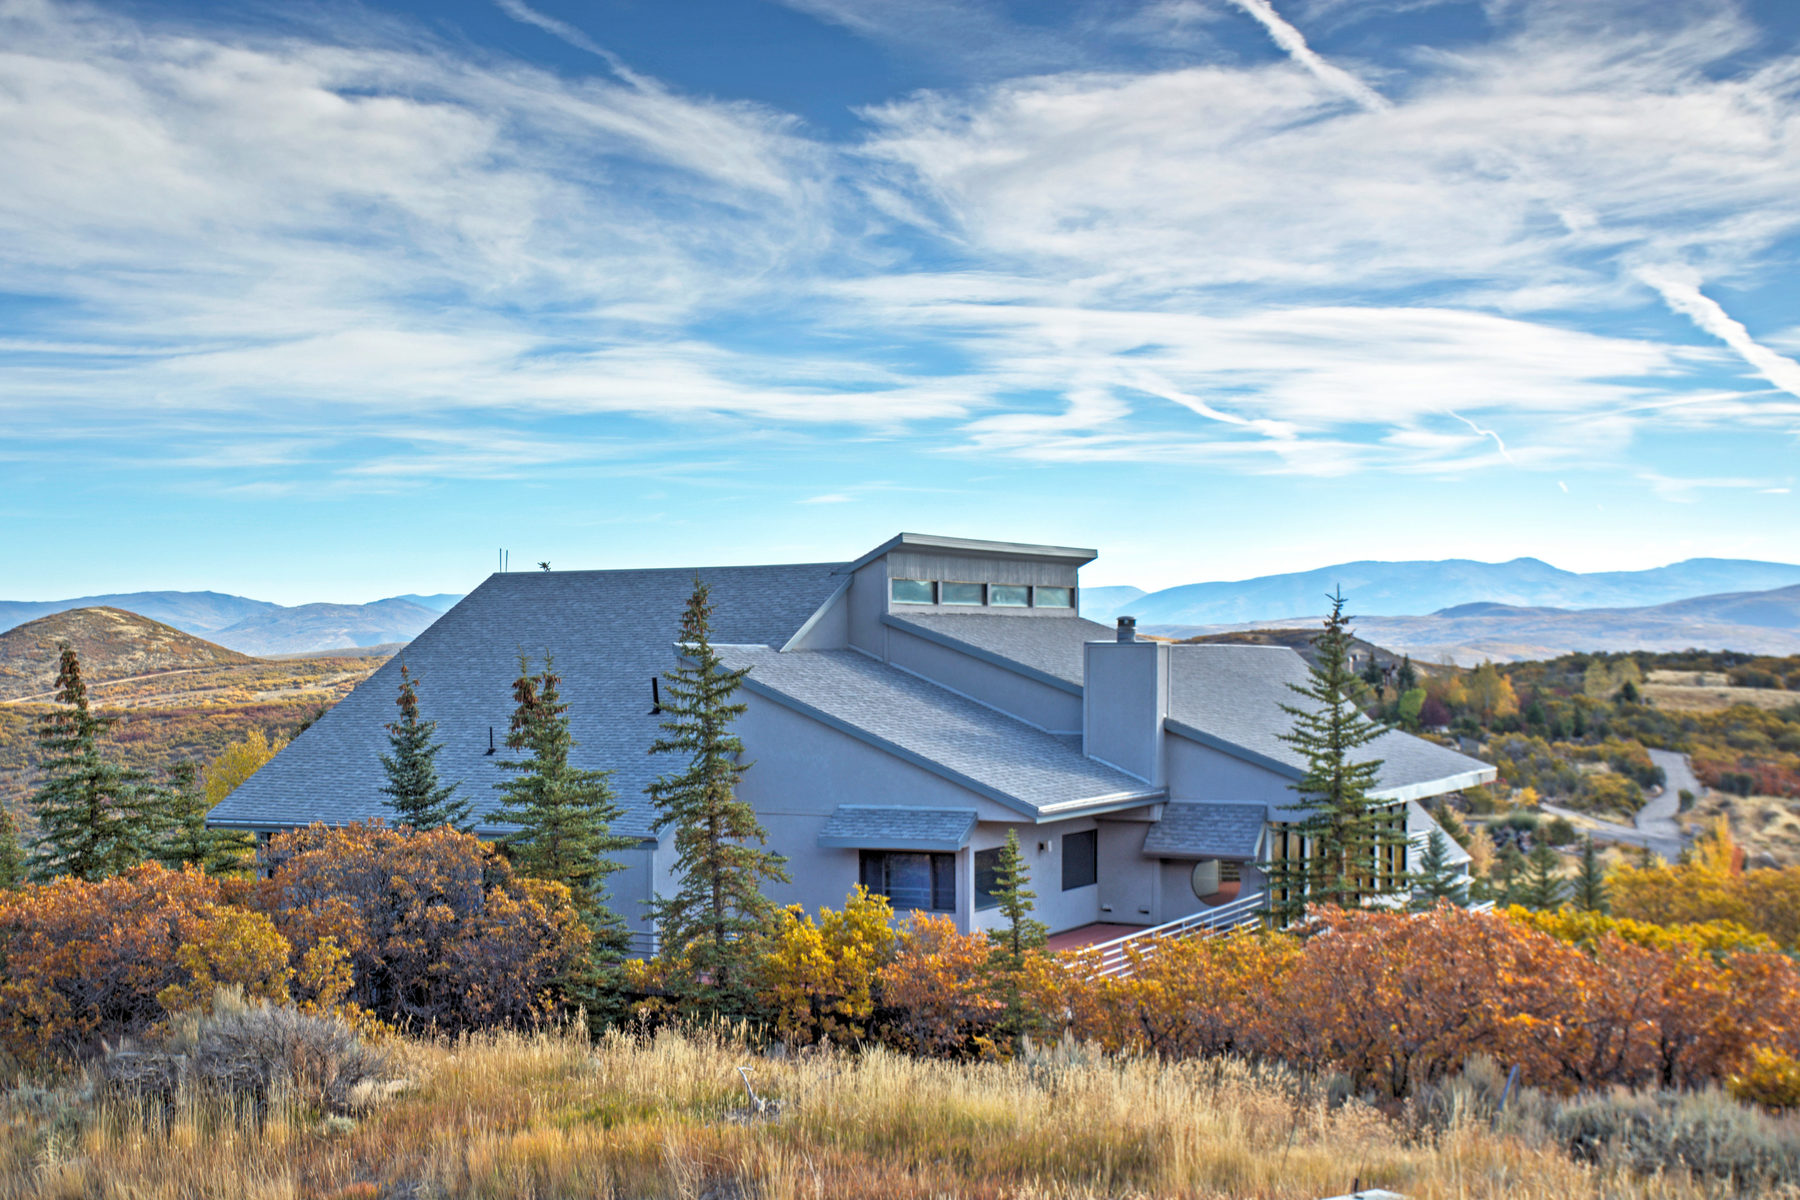 Tek Ailelik Ev için Satış at This Mountaintop Gem is the Perfect Personal or Corporate Retreat 325 Mountain Top Dr Park City, Utah, 84060 Amerika Birleşik Devletleri